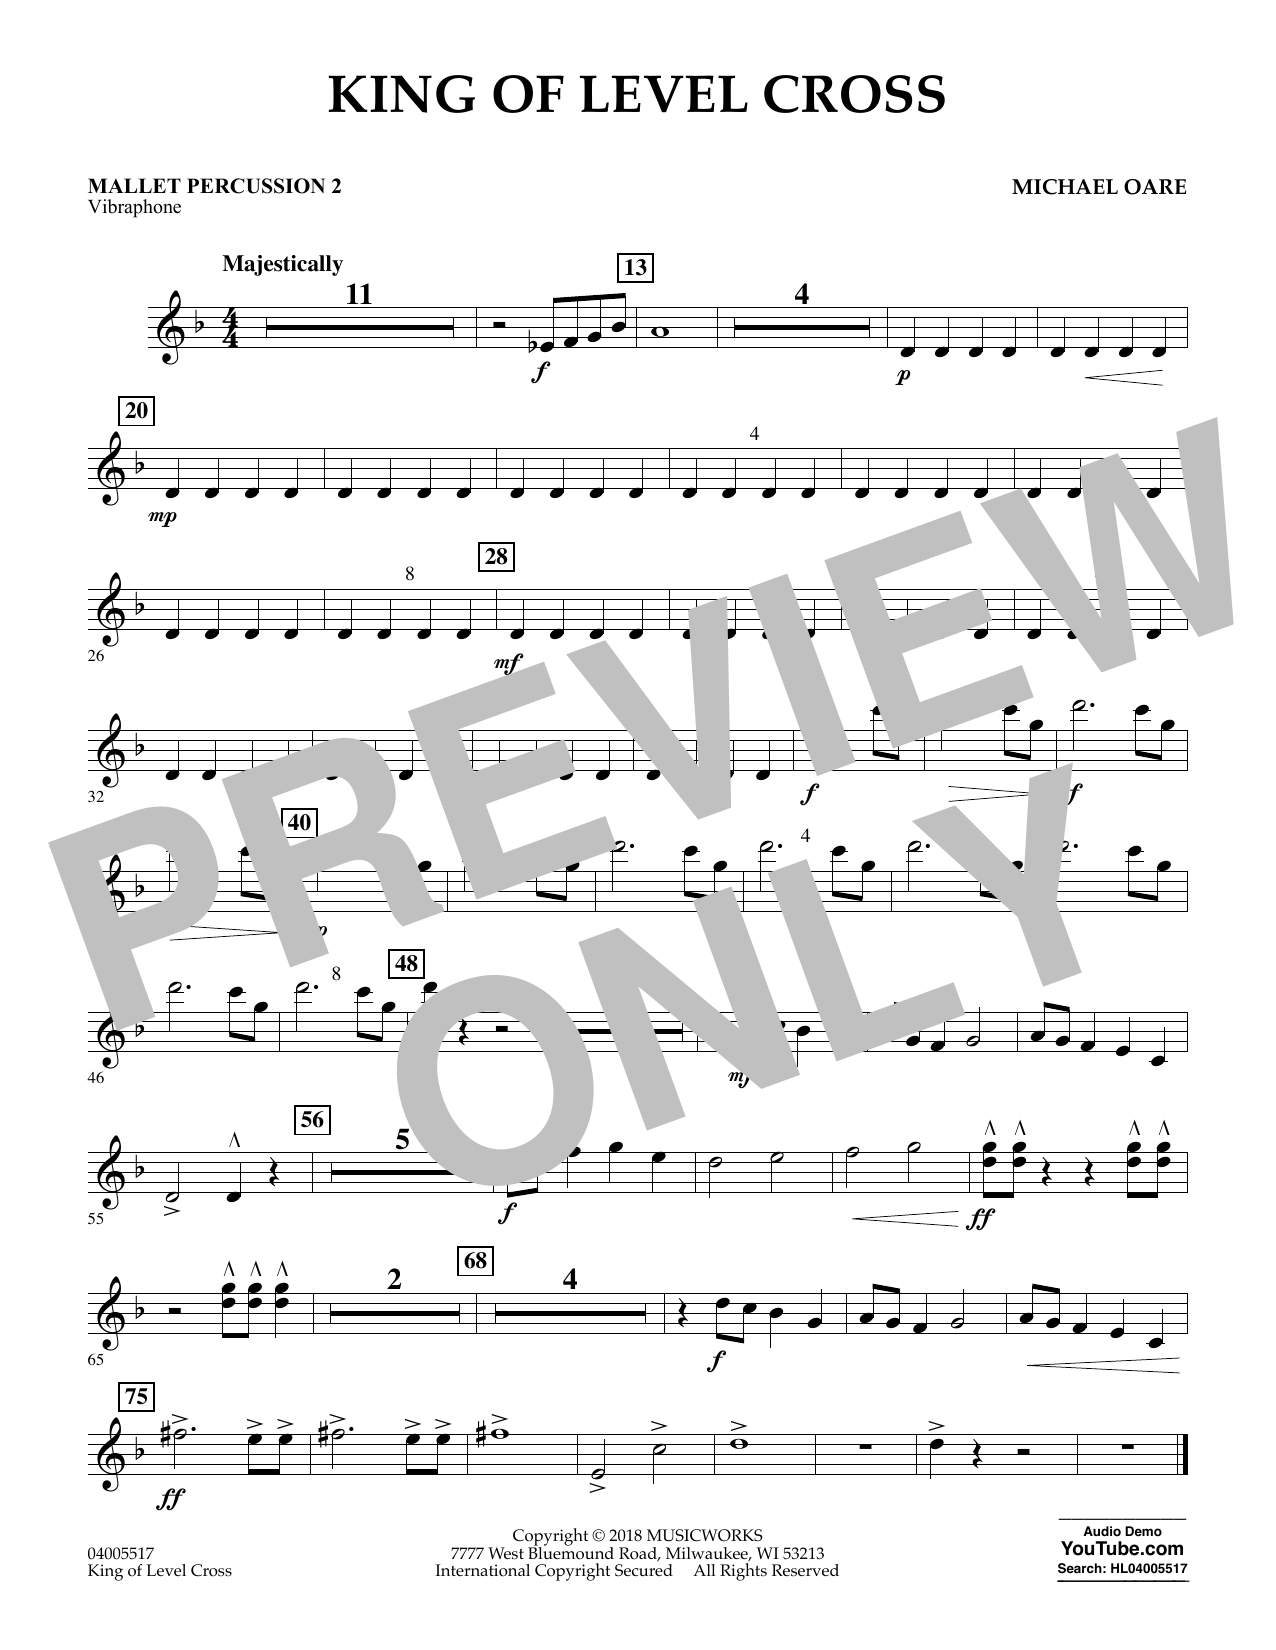 Michael Oare King of Level Cross - Mallet Percussion 2 sheet music notes and chords. Download Printable PDF.